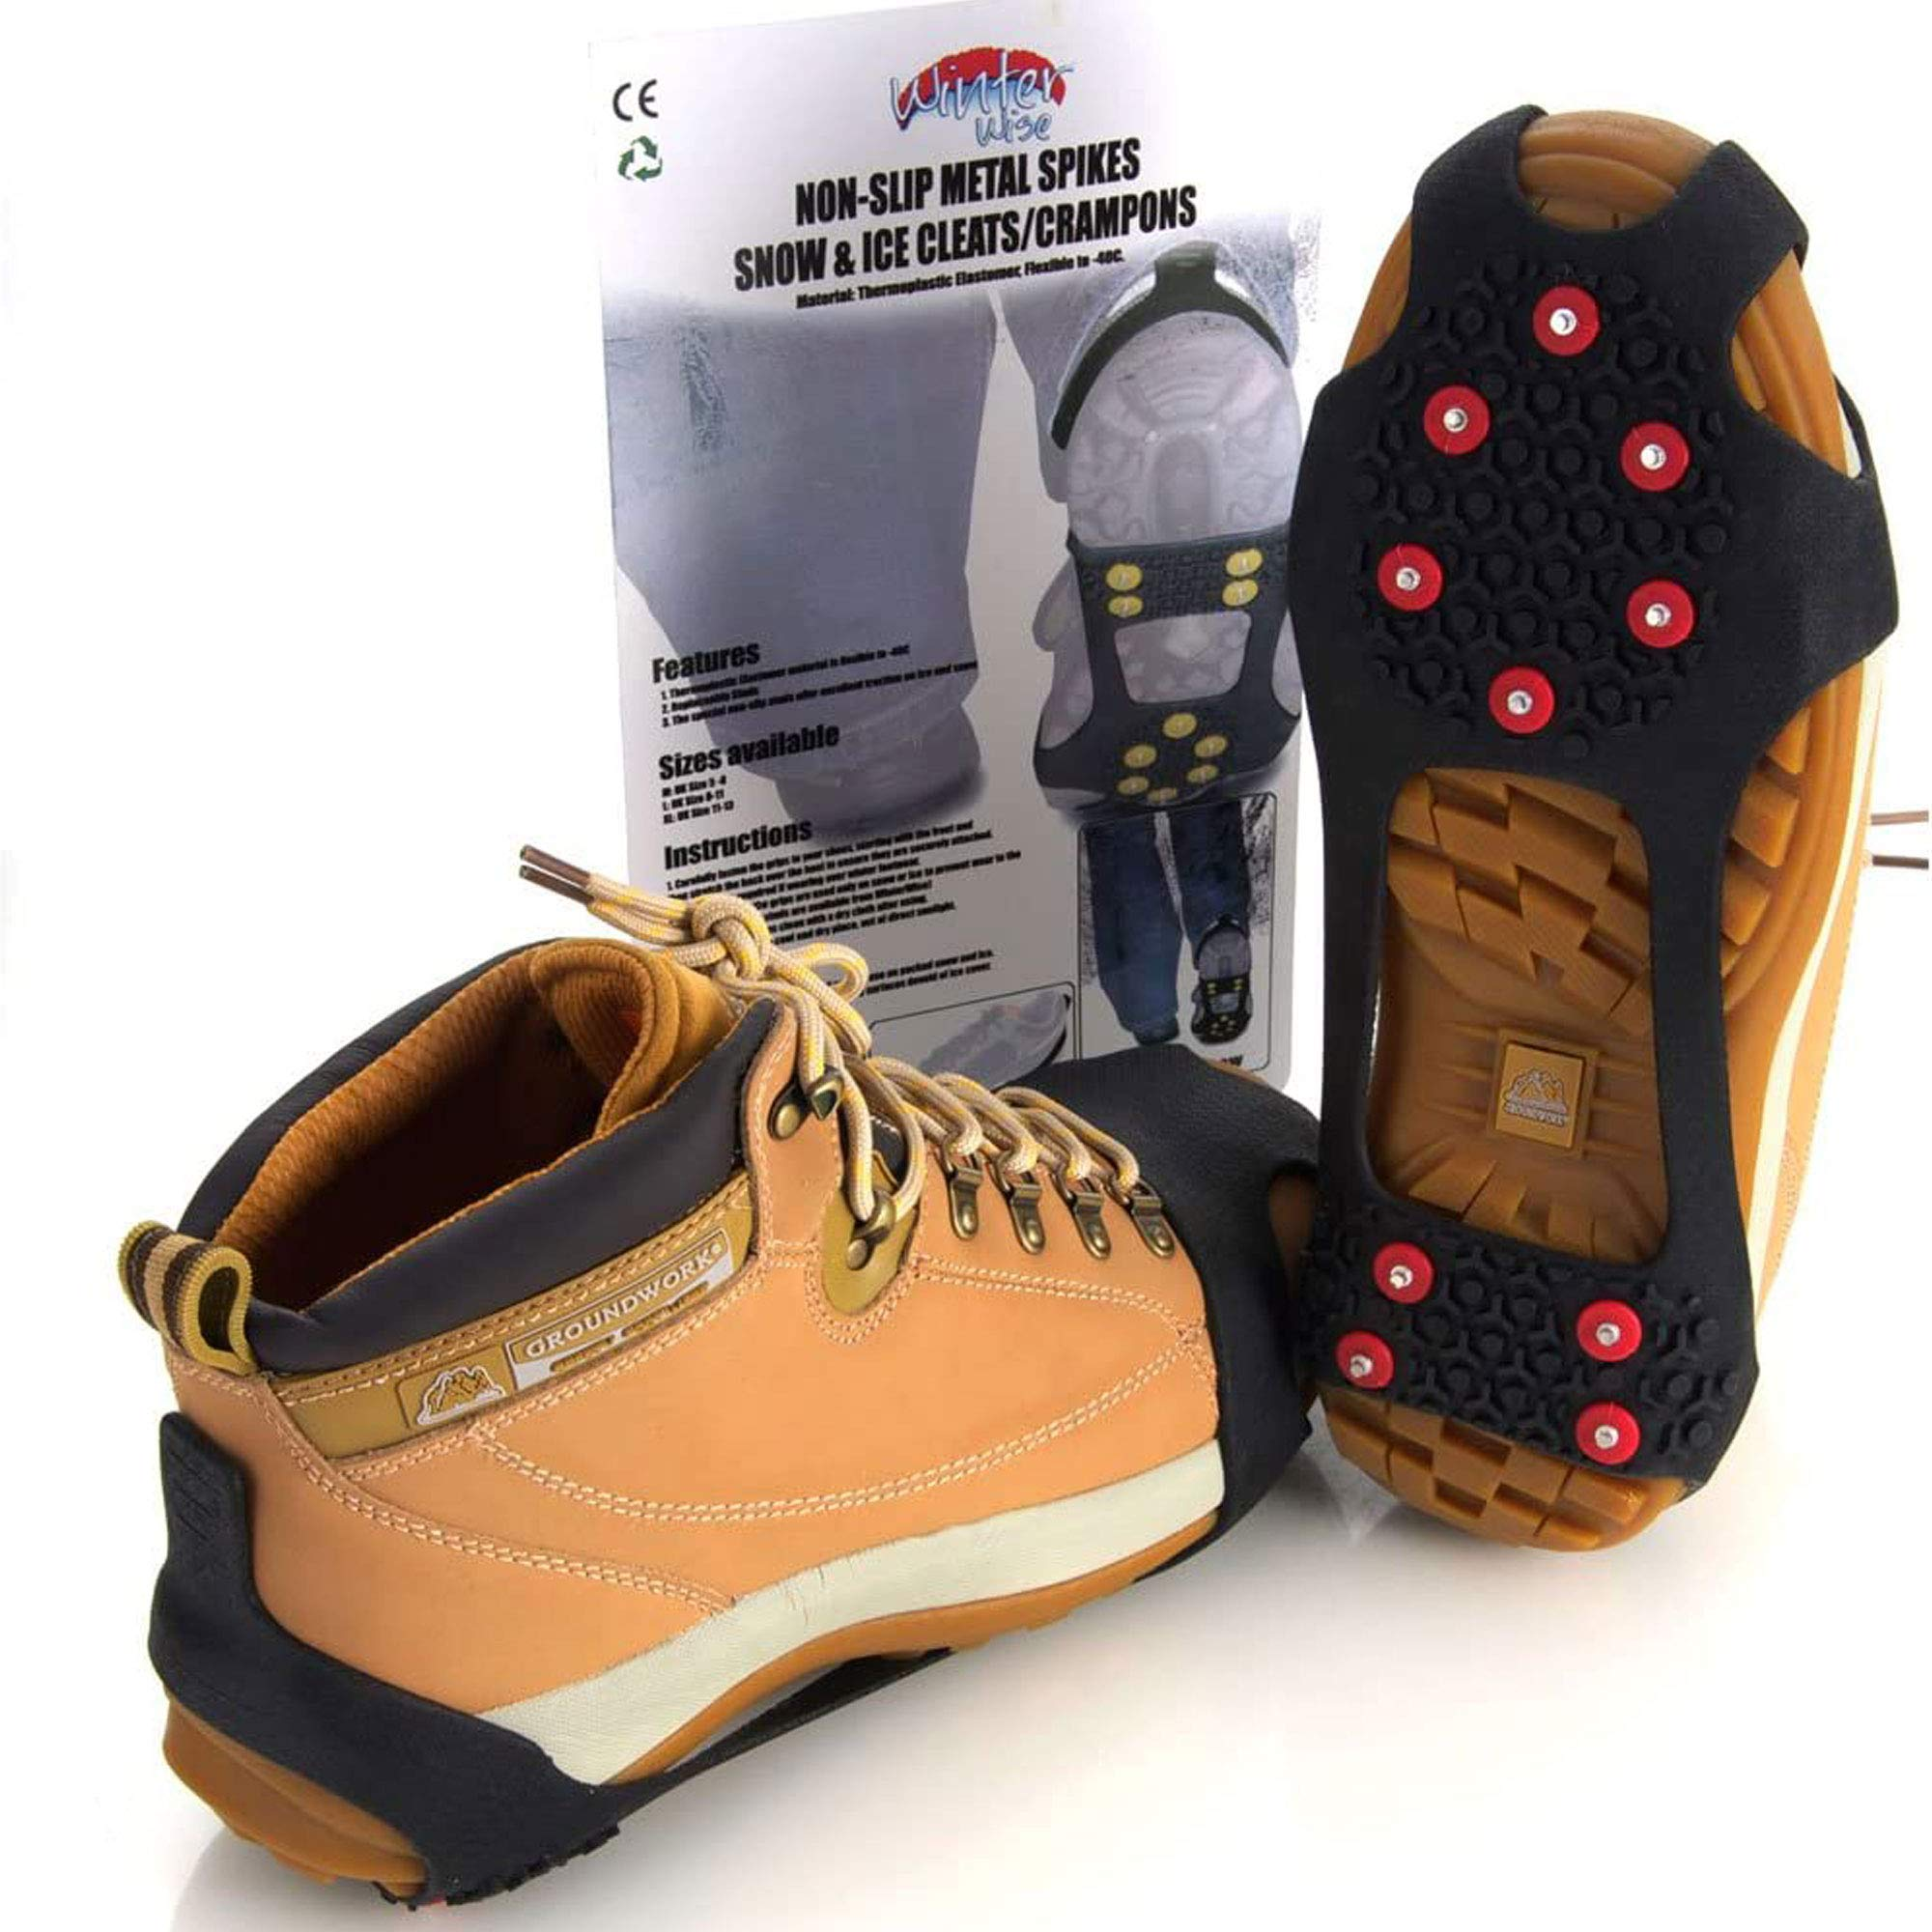 Outdoor Anti-Skid Snow Ice Gripper 10 Spikes Traction Cleats Crampons Unisex